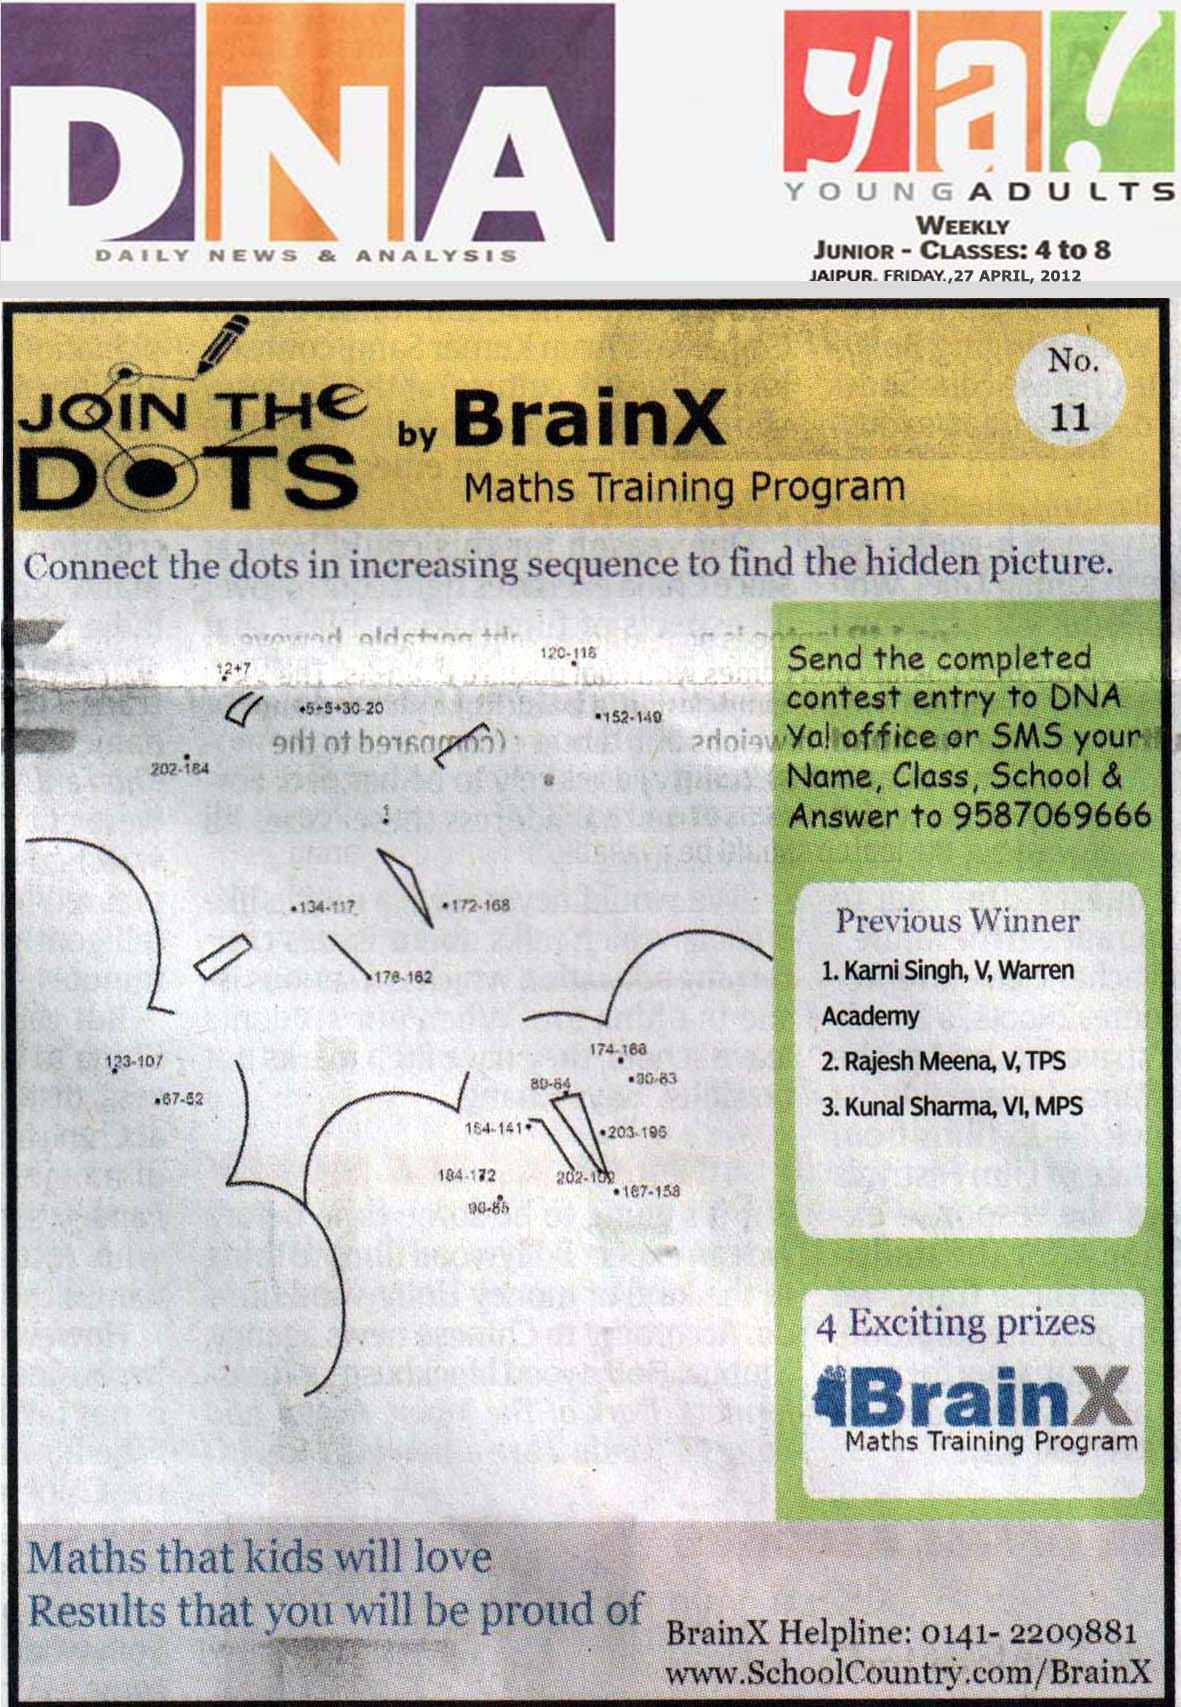 Number Singh Contest by BrainX Math Training Program published in DNA Ya! on 27-04-2012.